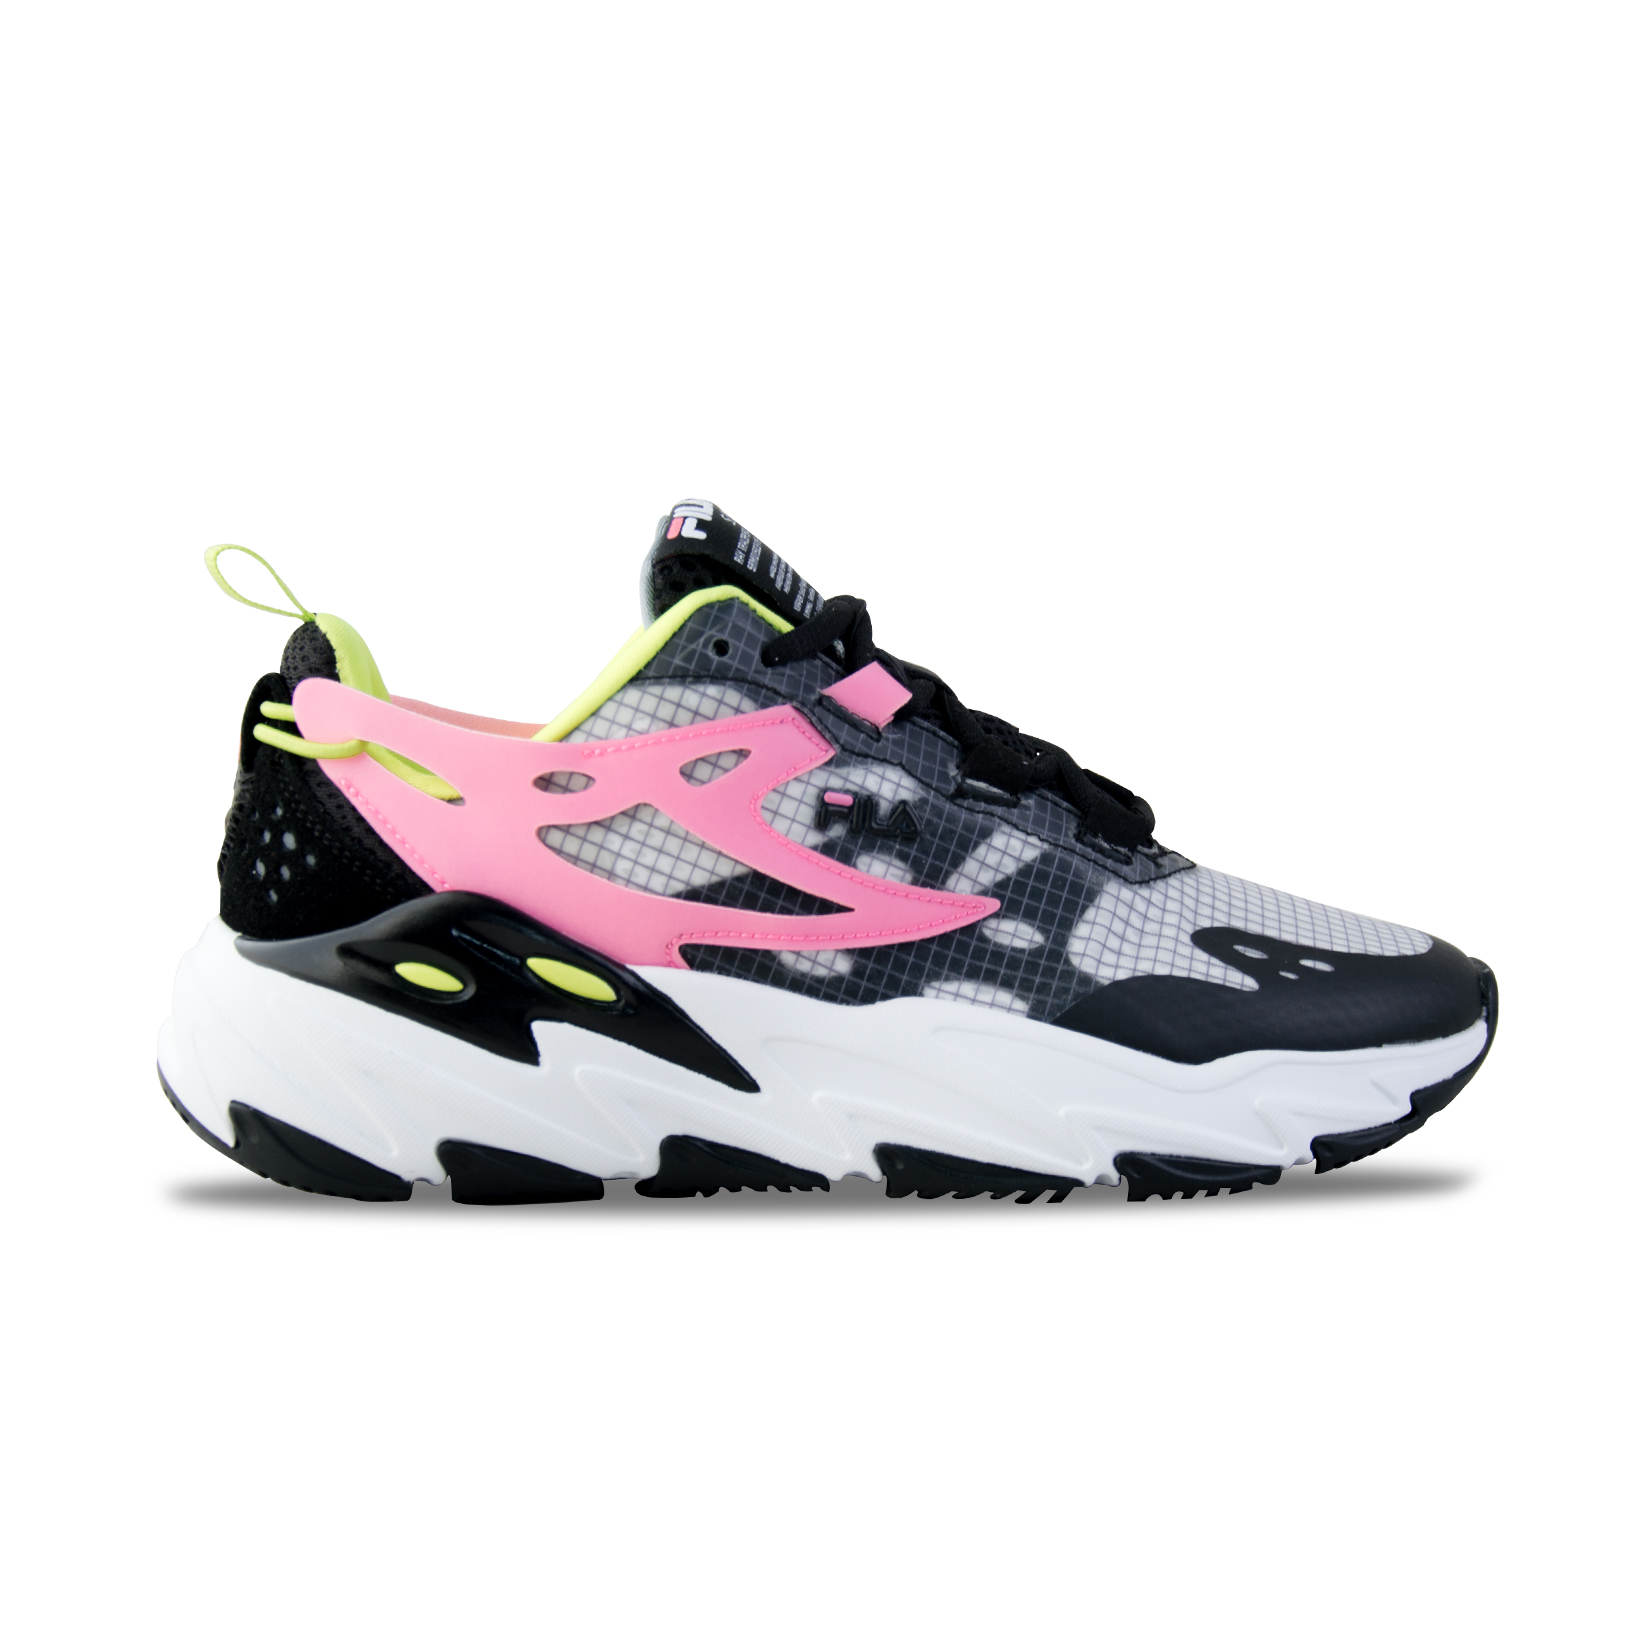 Fila Ray Tracer Suede Black - Pink